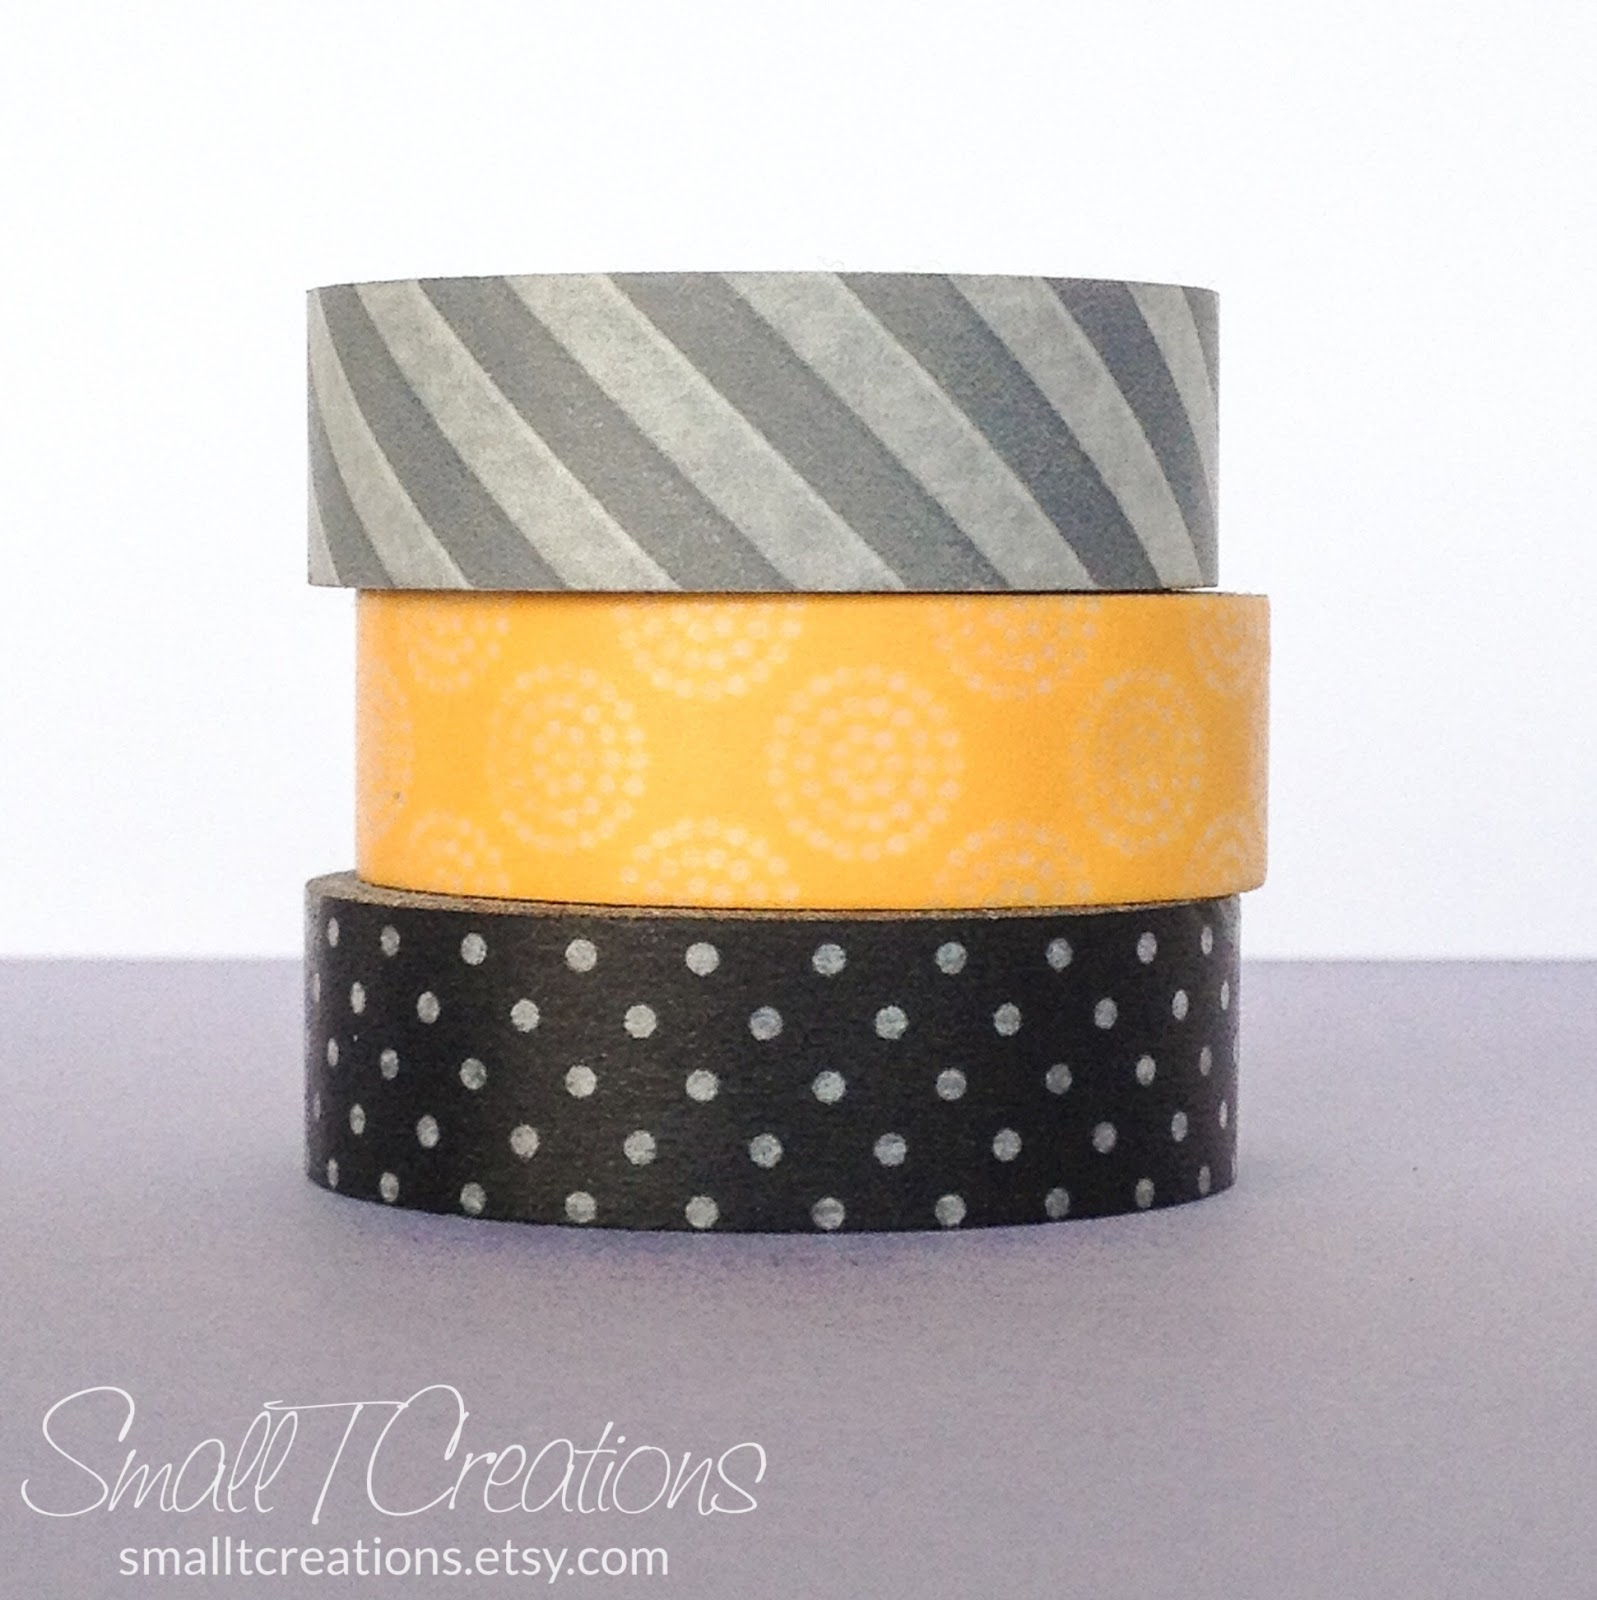 Halloween Washi Tape Set by Small T Creations on Etsy https://www.etsy.com/listing/207532080/halloween-washi-tape-set-masking-tape?ref=shop_home_active_3